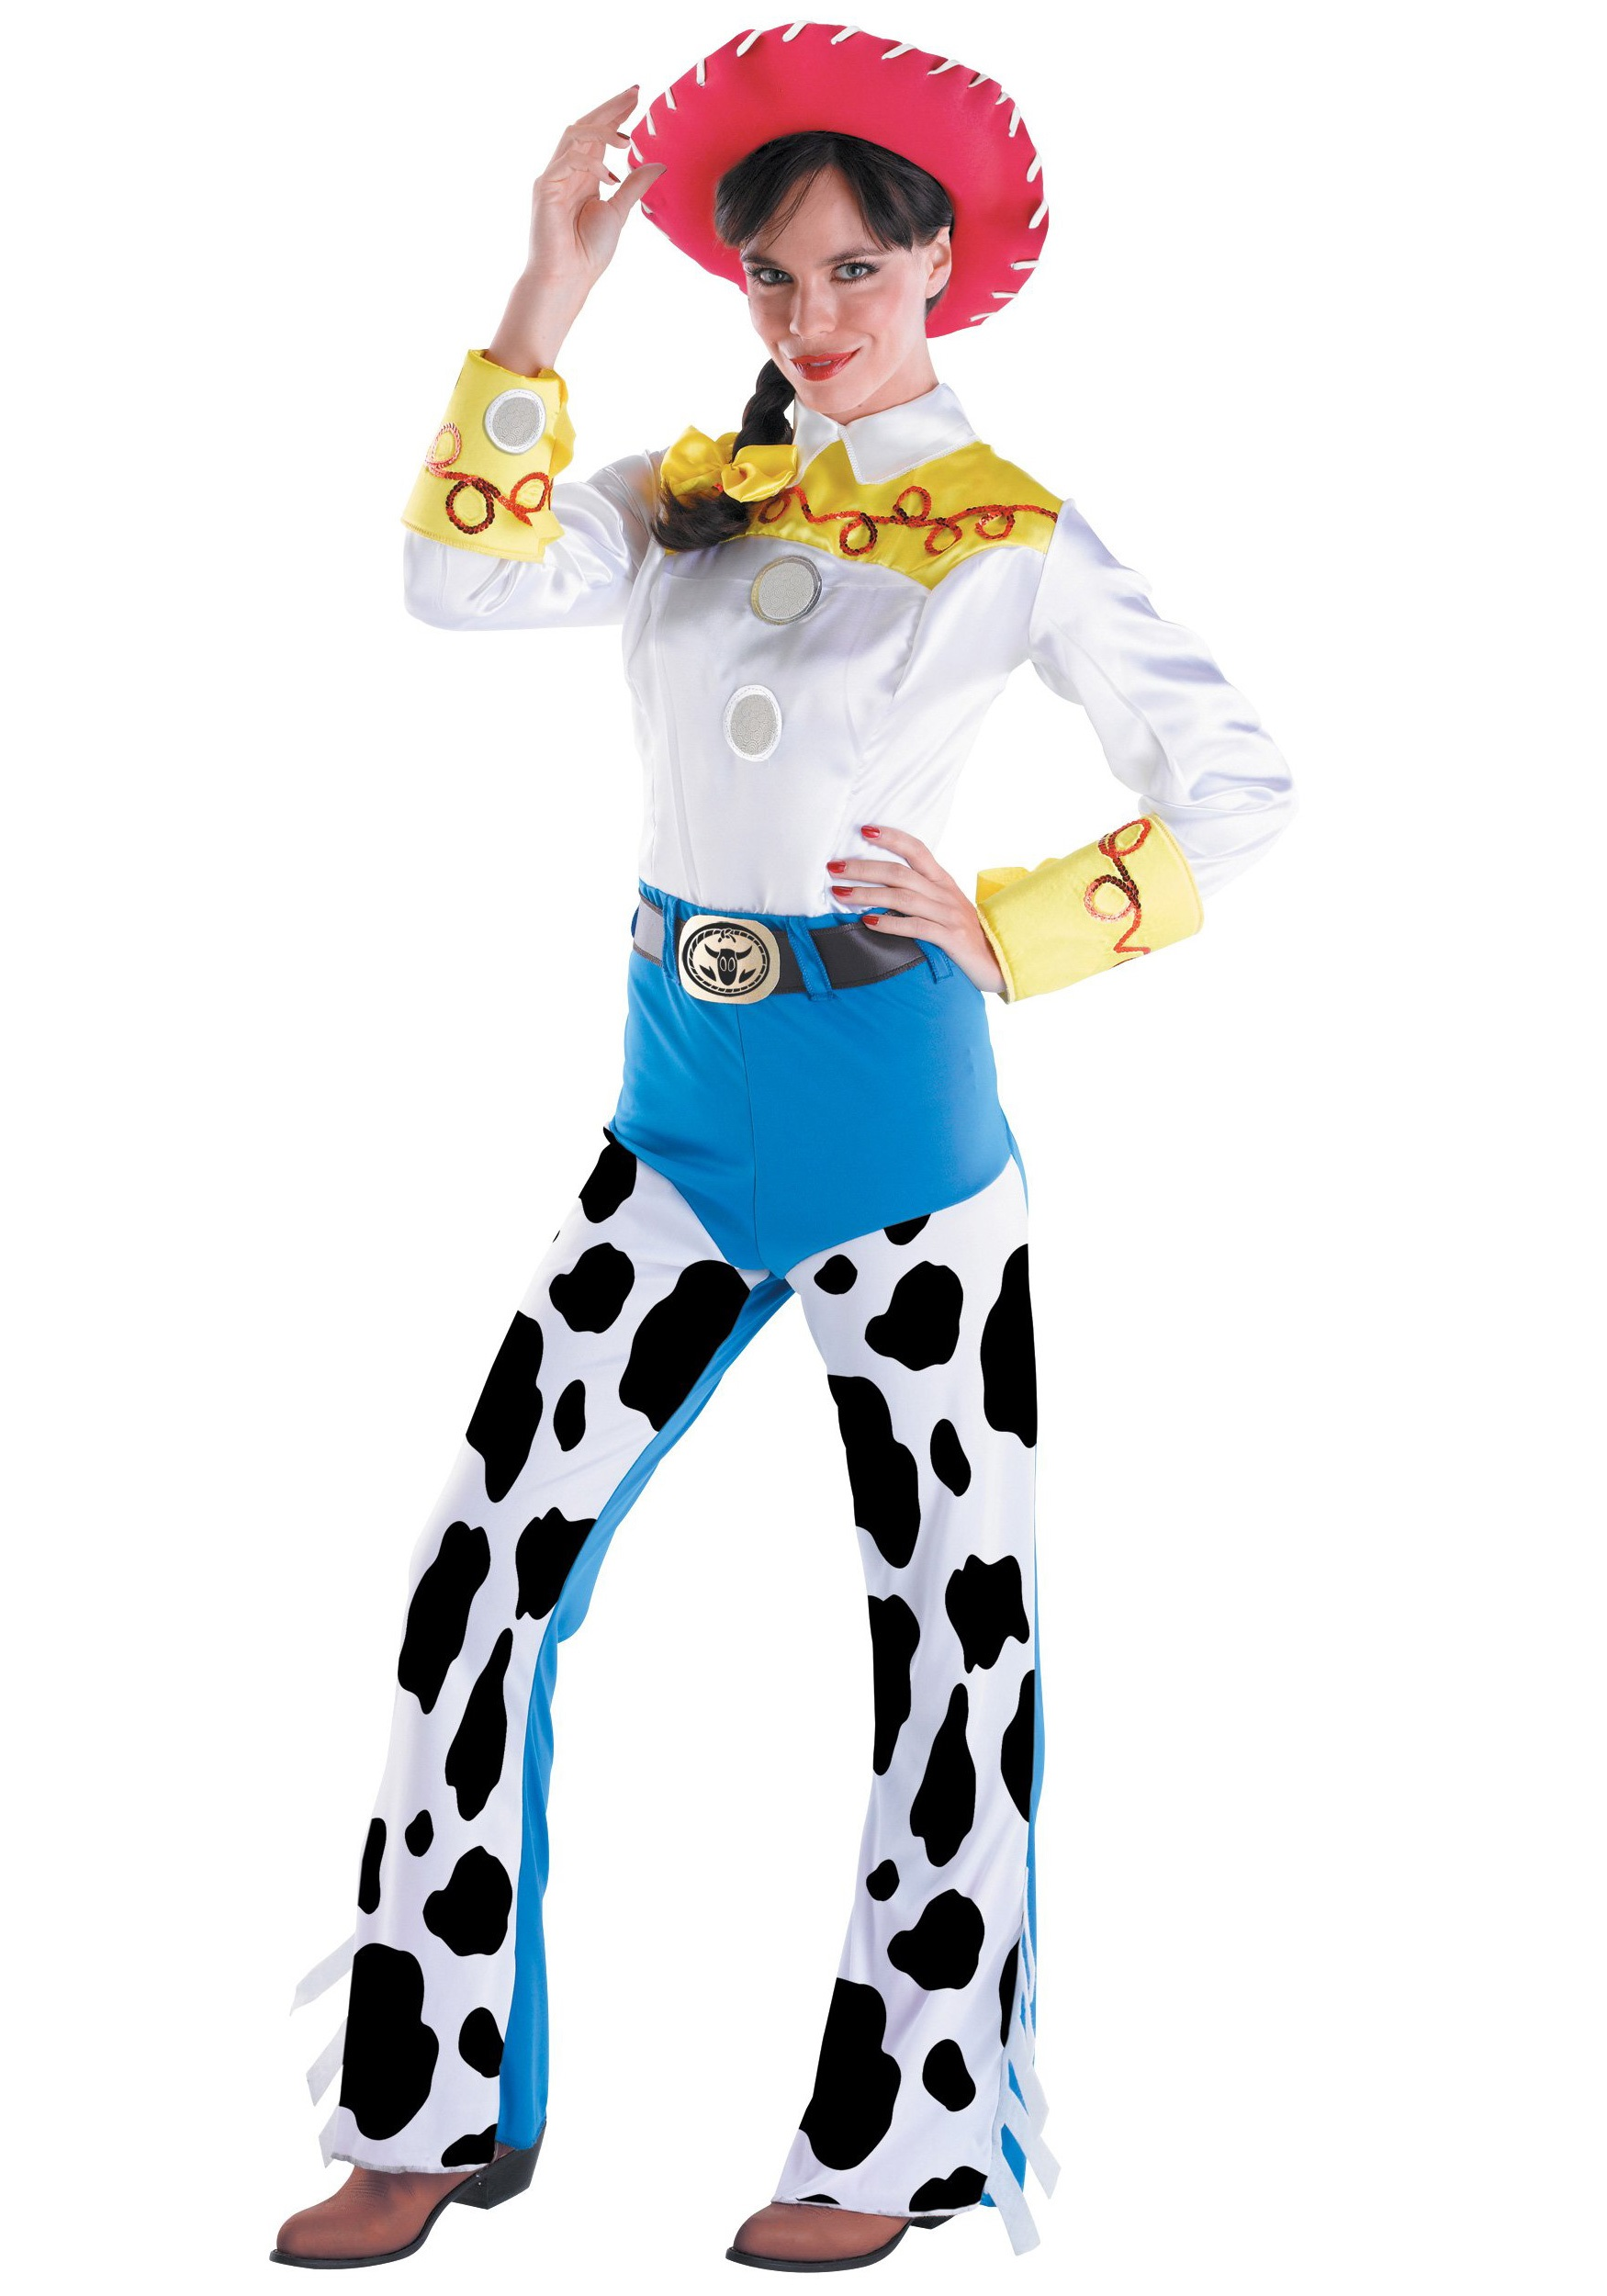 Toy Story Costumes - Adult, Kids Disney Halloween Costume